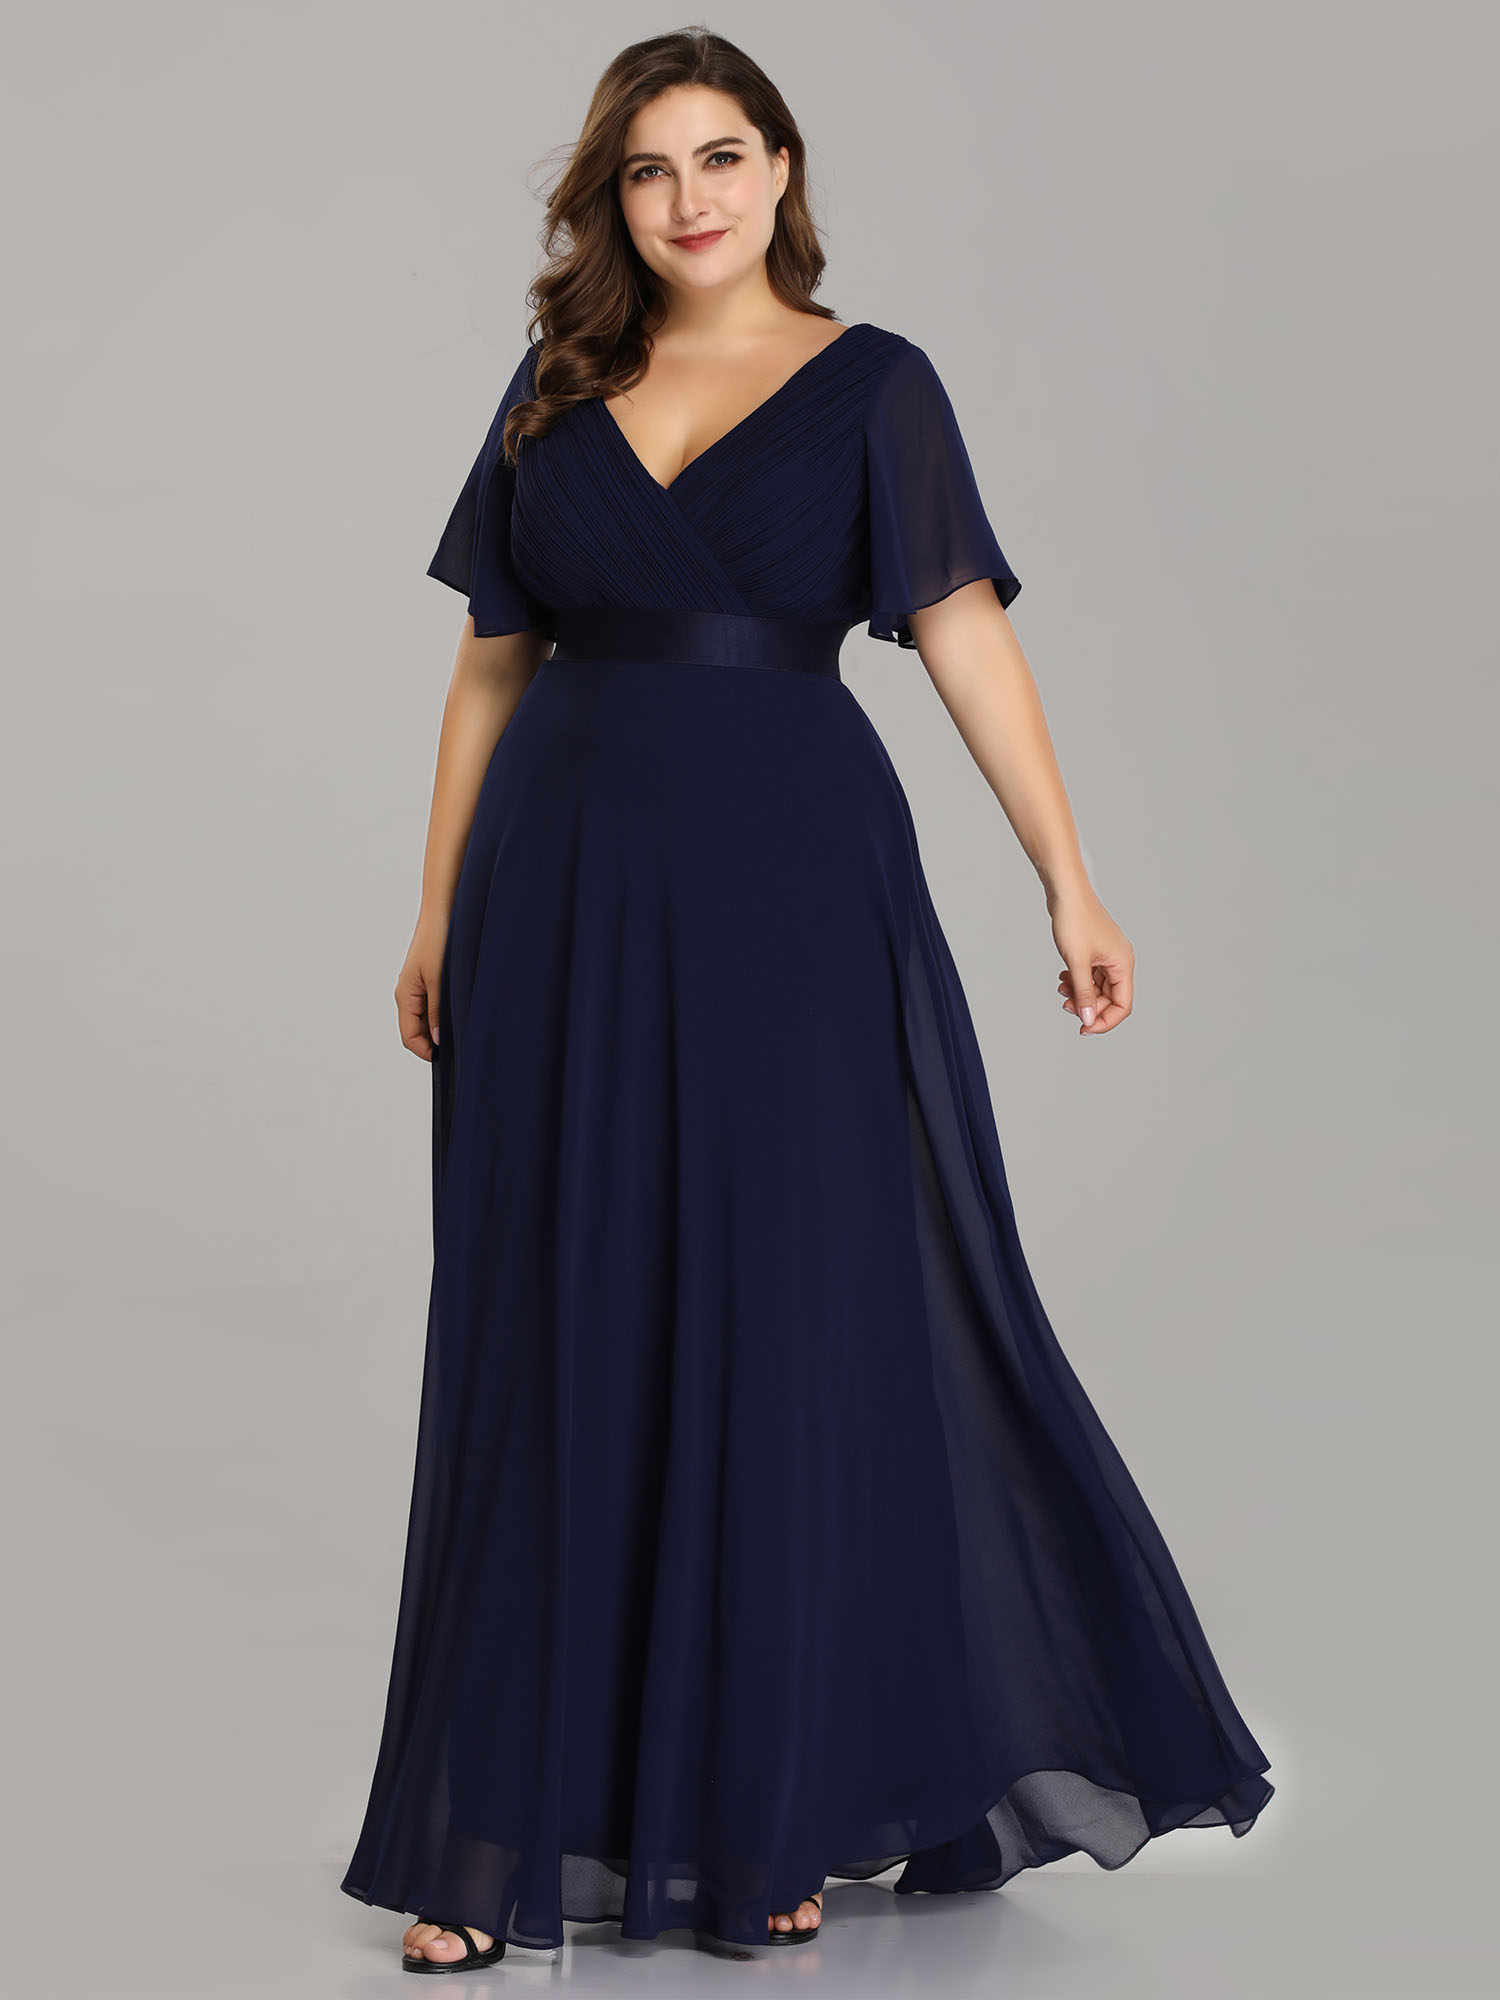 Womens Plus Size Bridesmaid Dresses